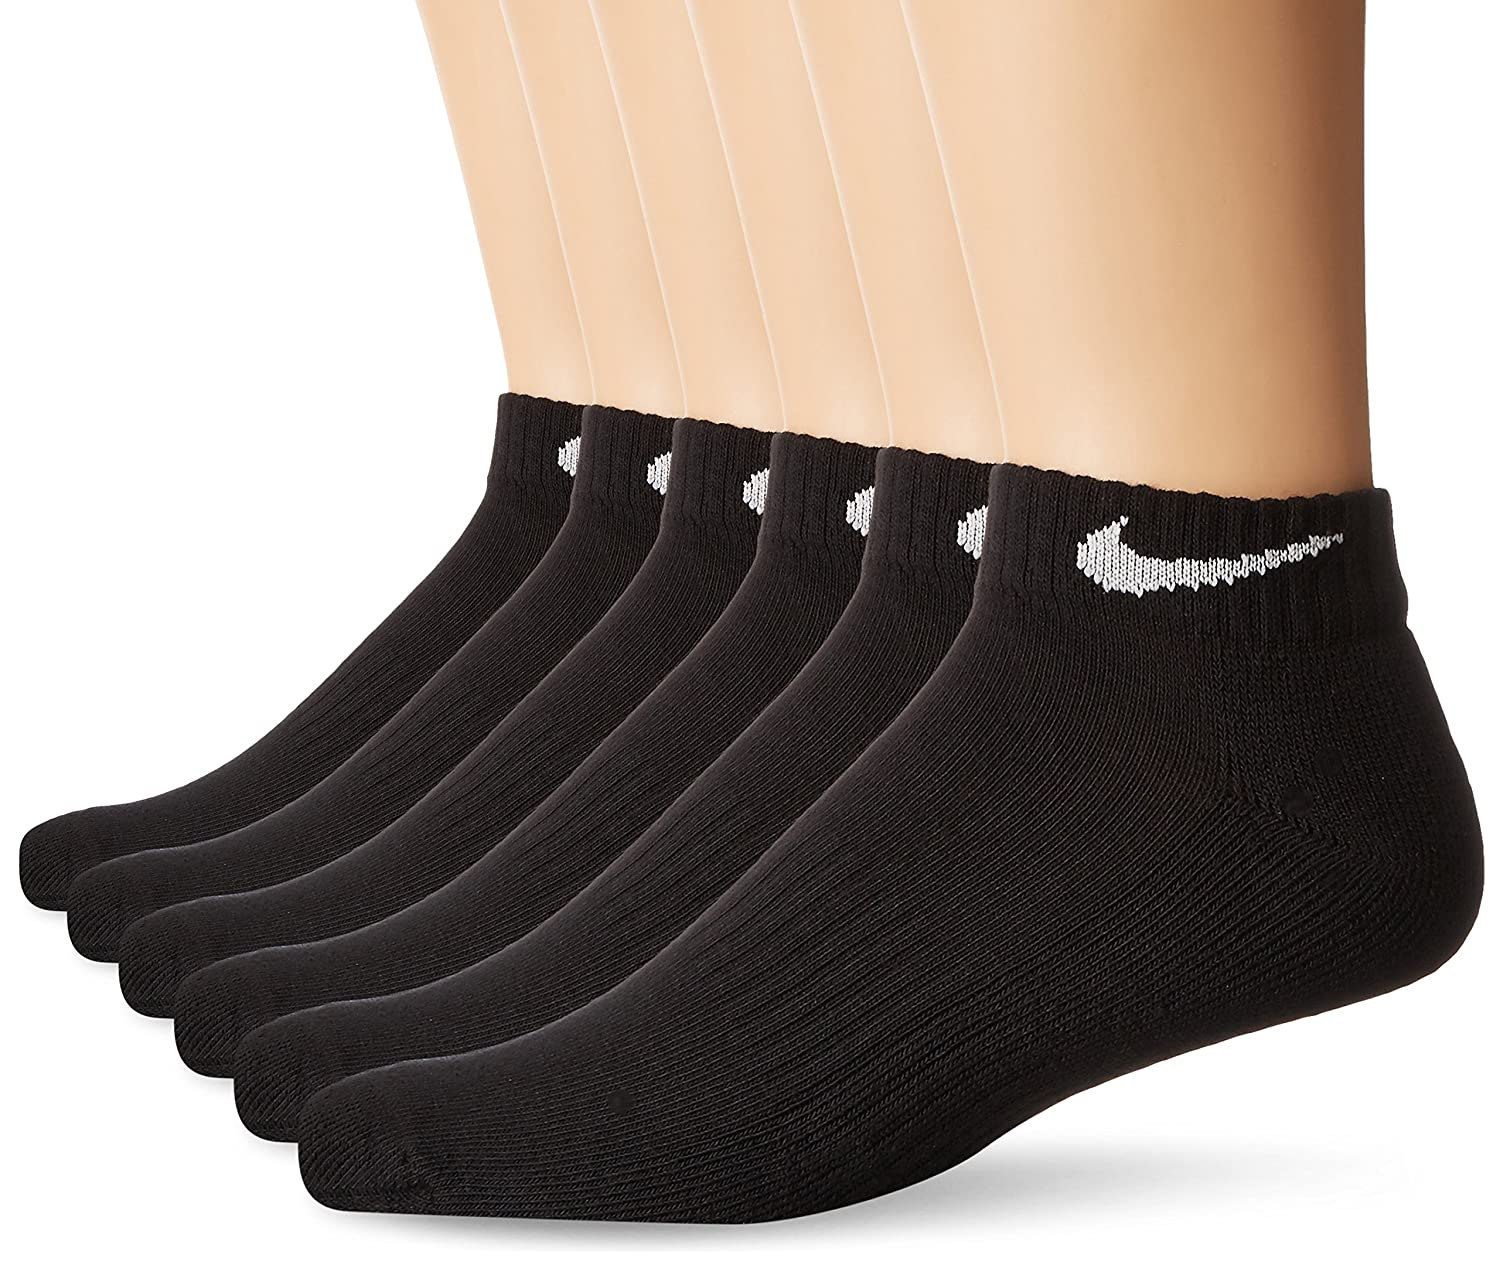 7d3f1ec173fe Amazon.com  NIKE Performance Cushion Low Rise Socks with Bag (6 Pairs)   Sports   Outdoors